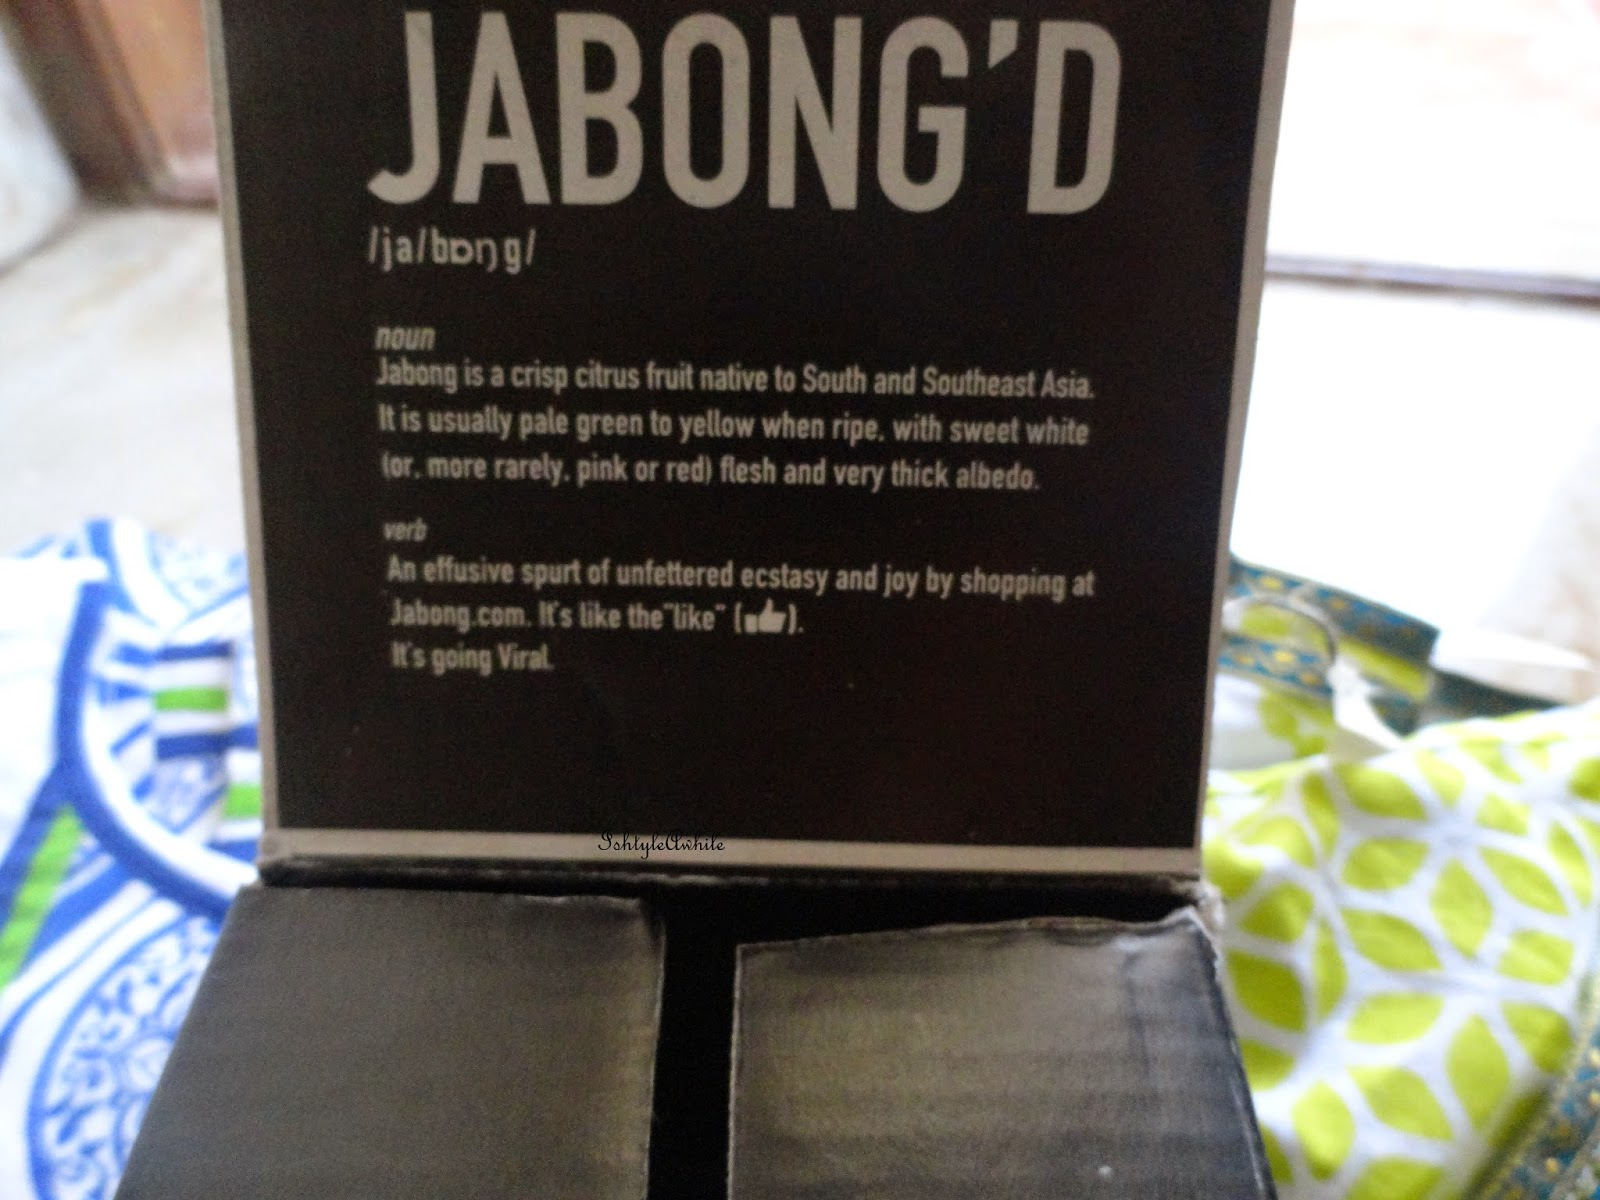 Shopping at Jabong.com- Review and Experience image